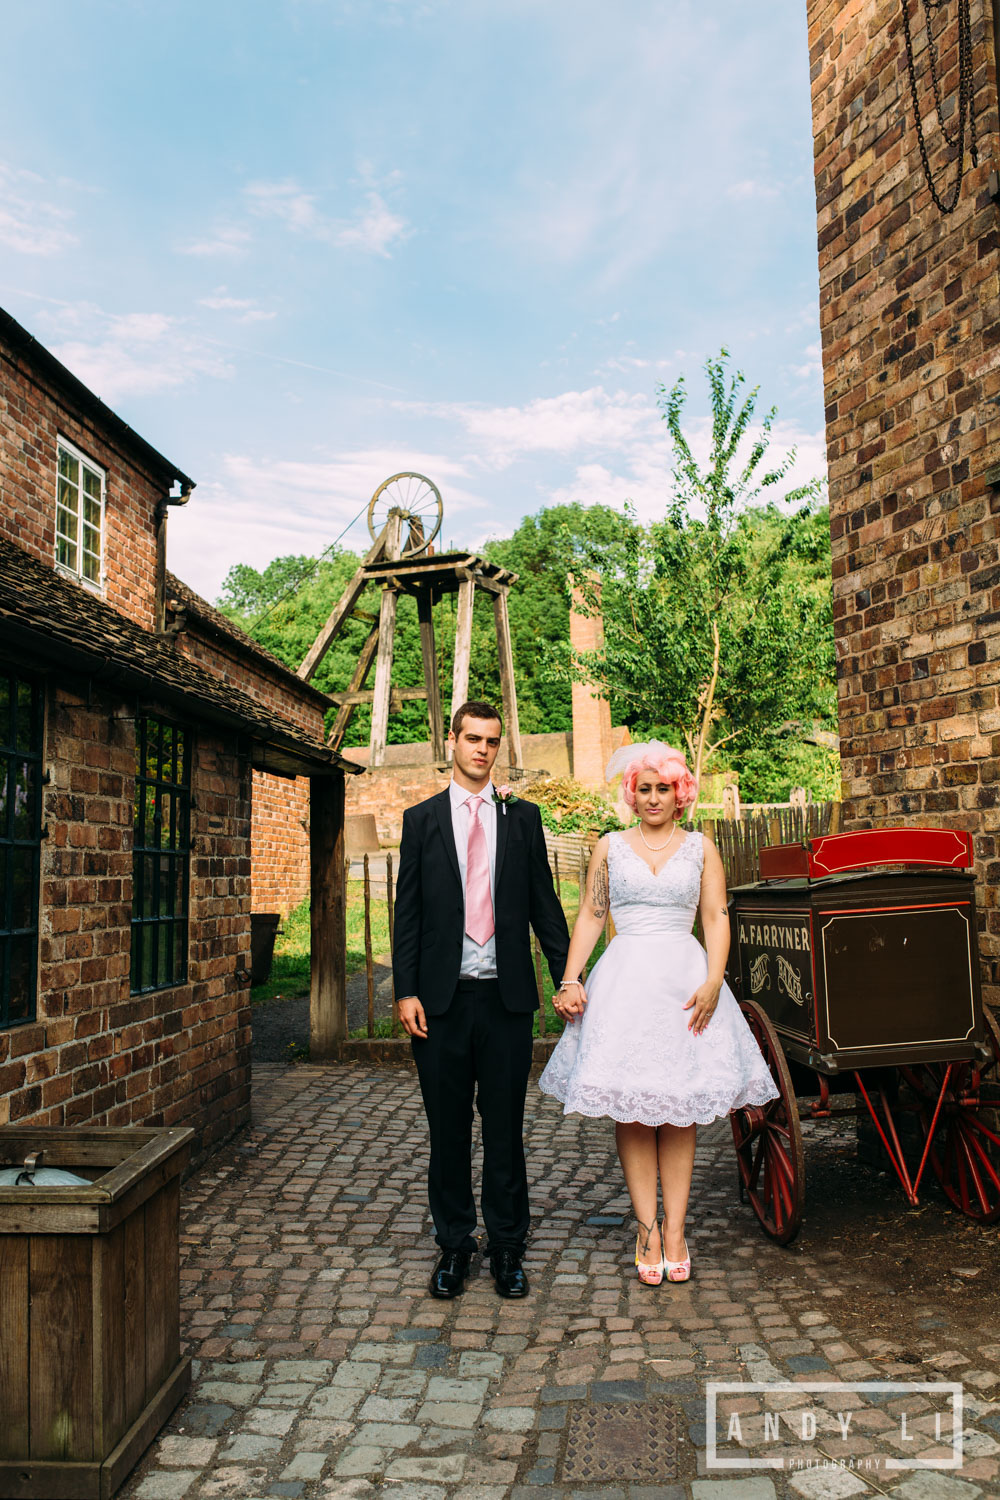 Blists Hill Ironbridge Wedding Photography-Andy Li Photography-499.jpg